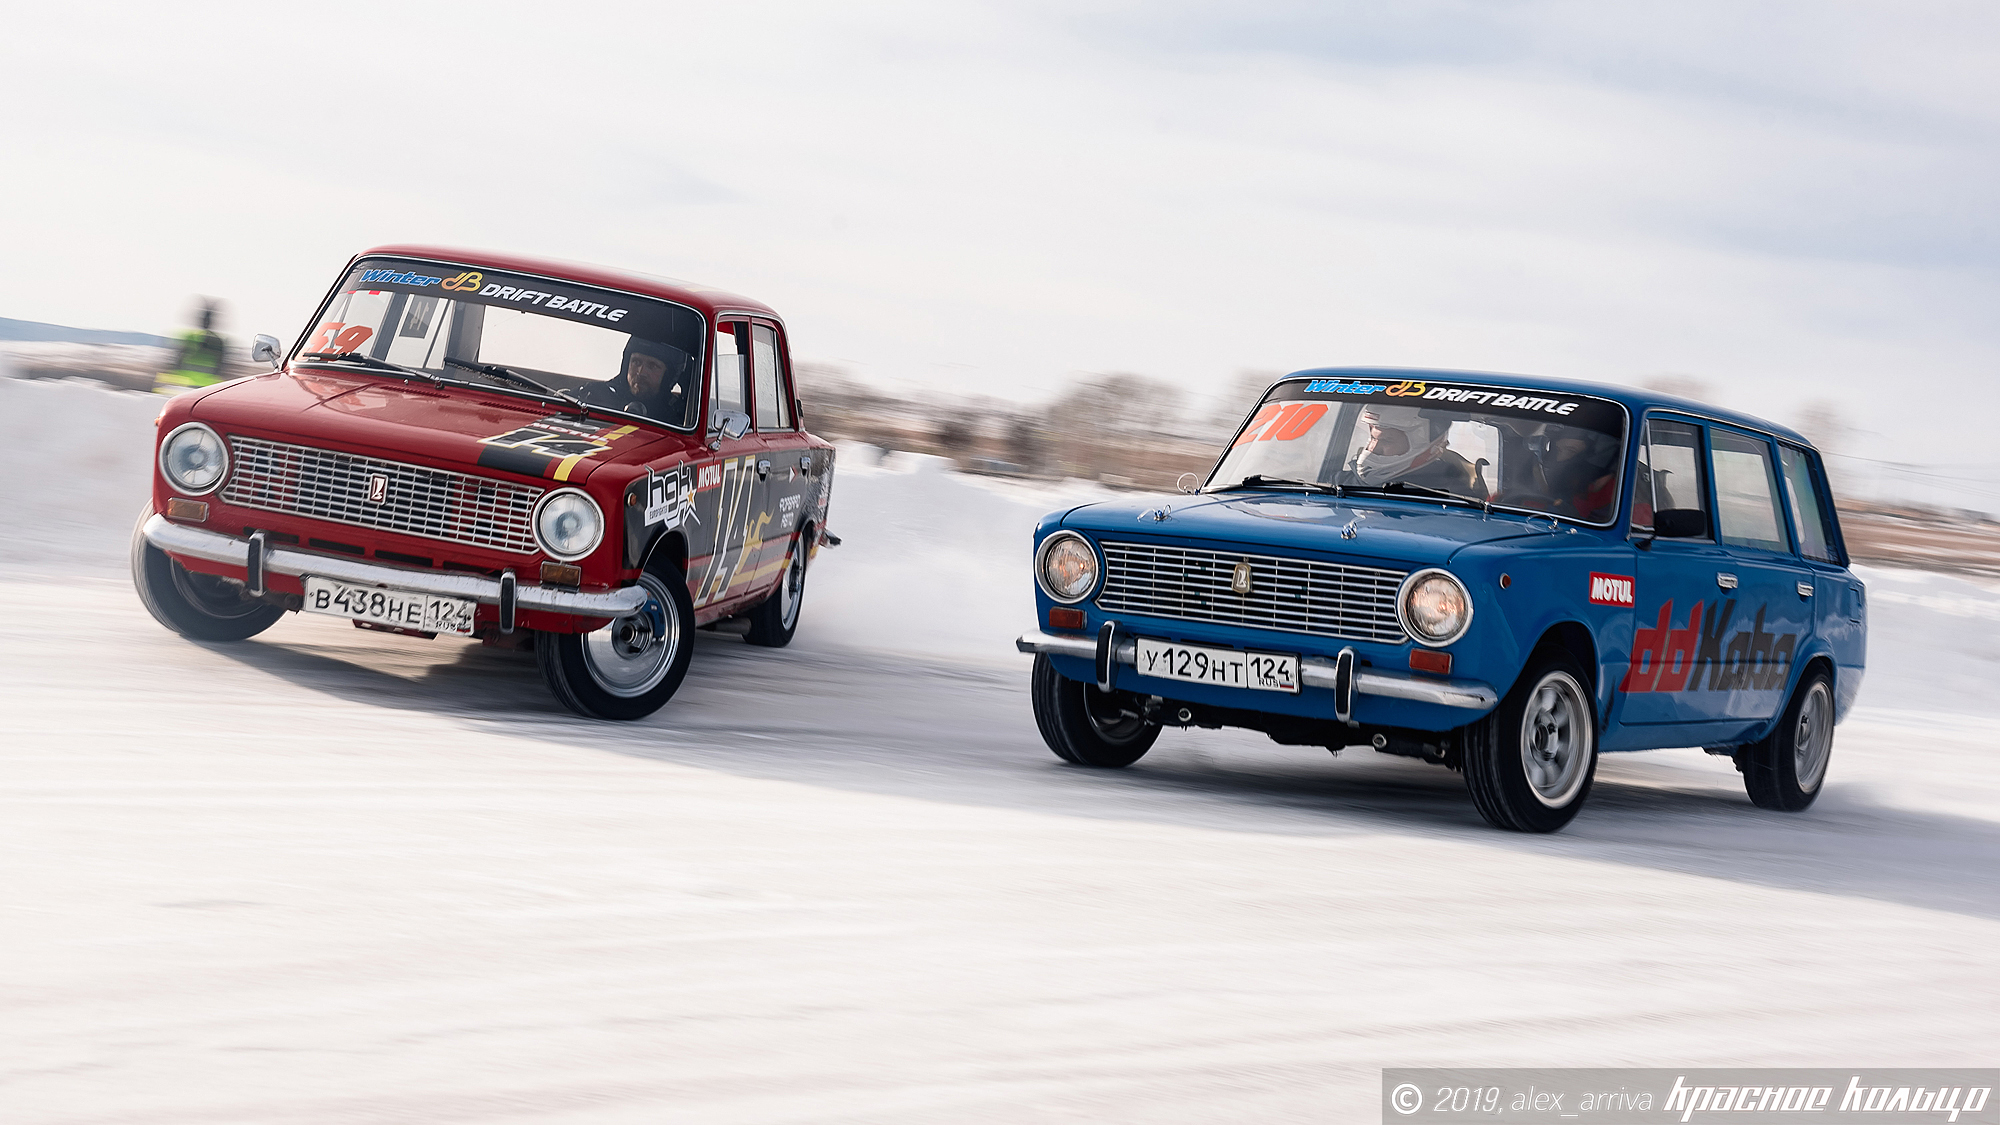 Gocha Chivchyan called winter drifting the perfect training, but it seems to be a mostly Russian thing. Do you think there is a place for this sort of competitions in Europe or stateside?